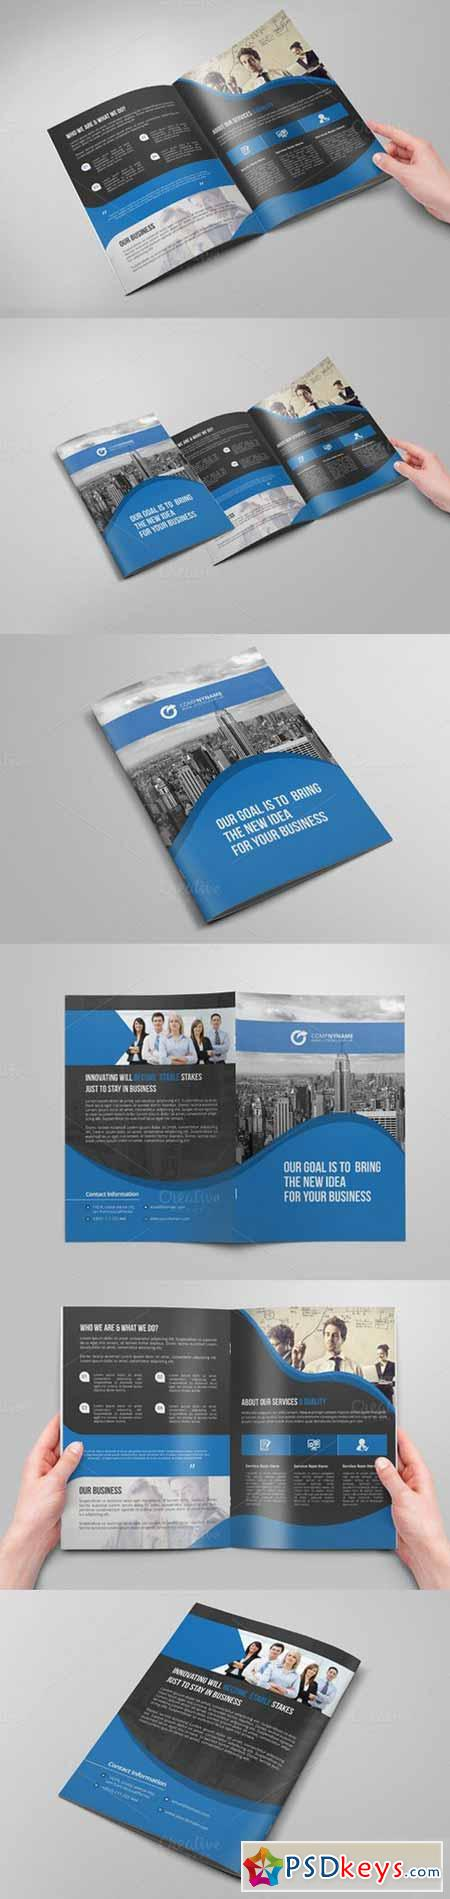 Bi fold brochure template 479080 free download photoshop for Free bi fold brochure template 2